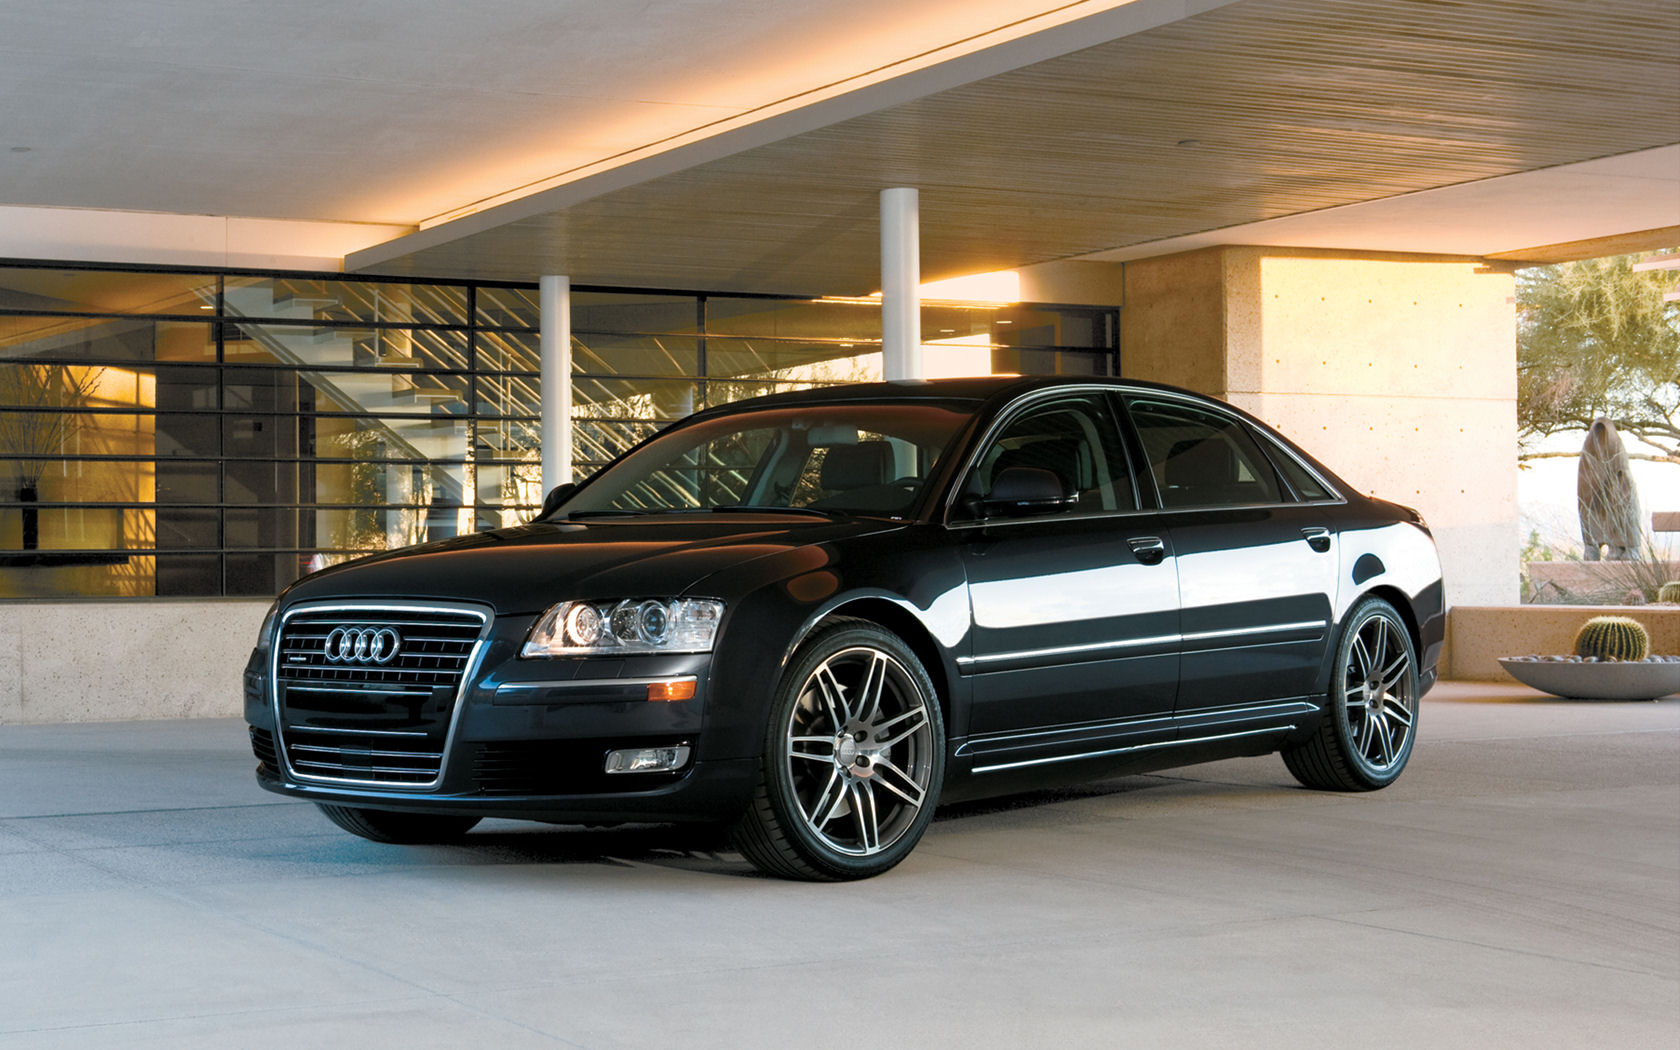 For Your Desktop 42 Top Quality Audi A8 Wallpapers BSCB 1680x1050